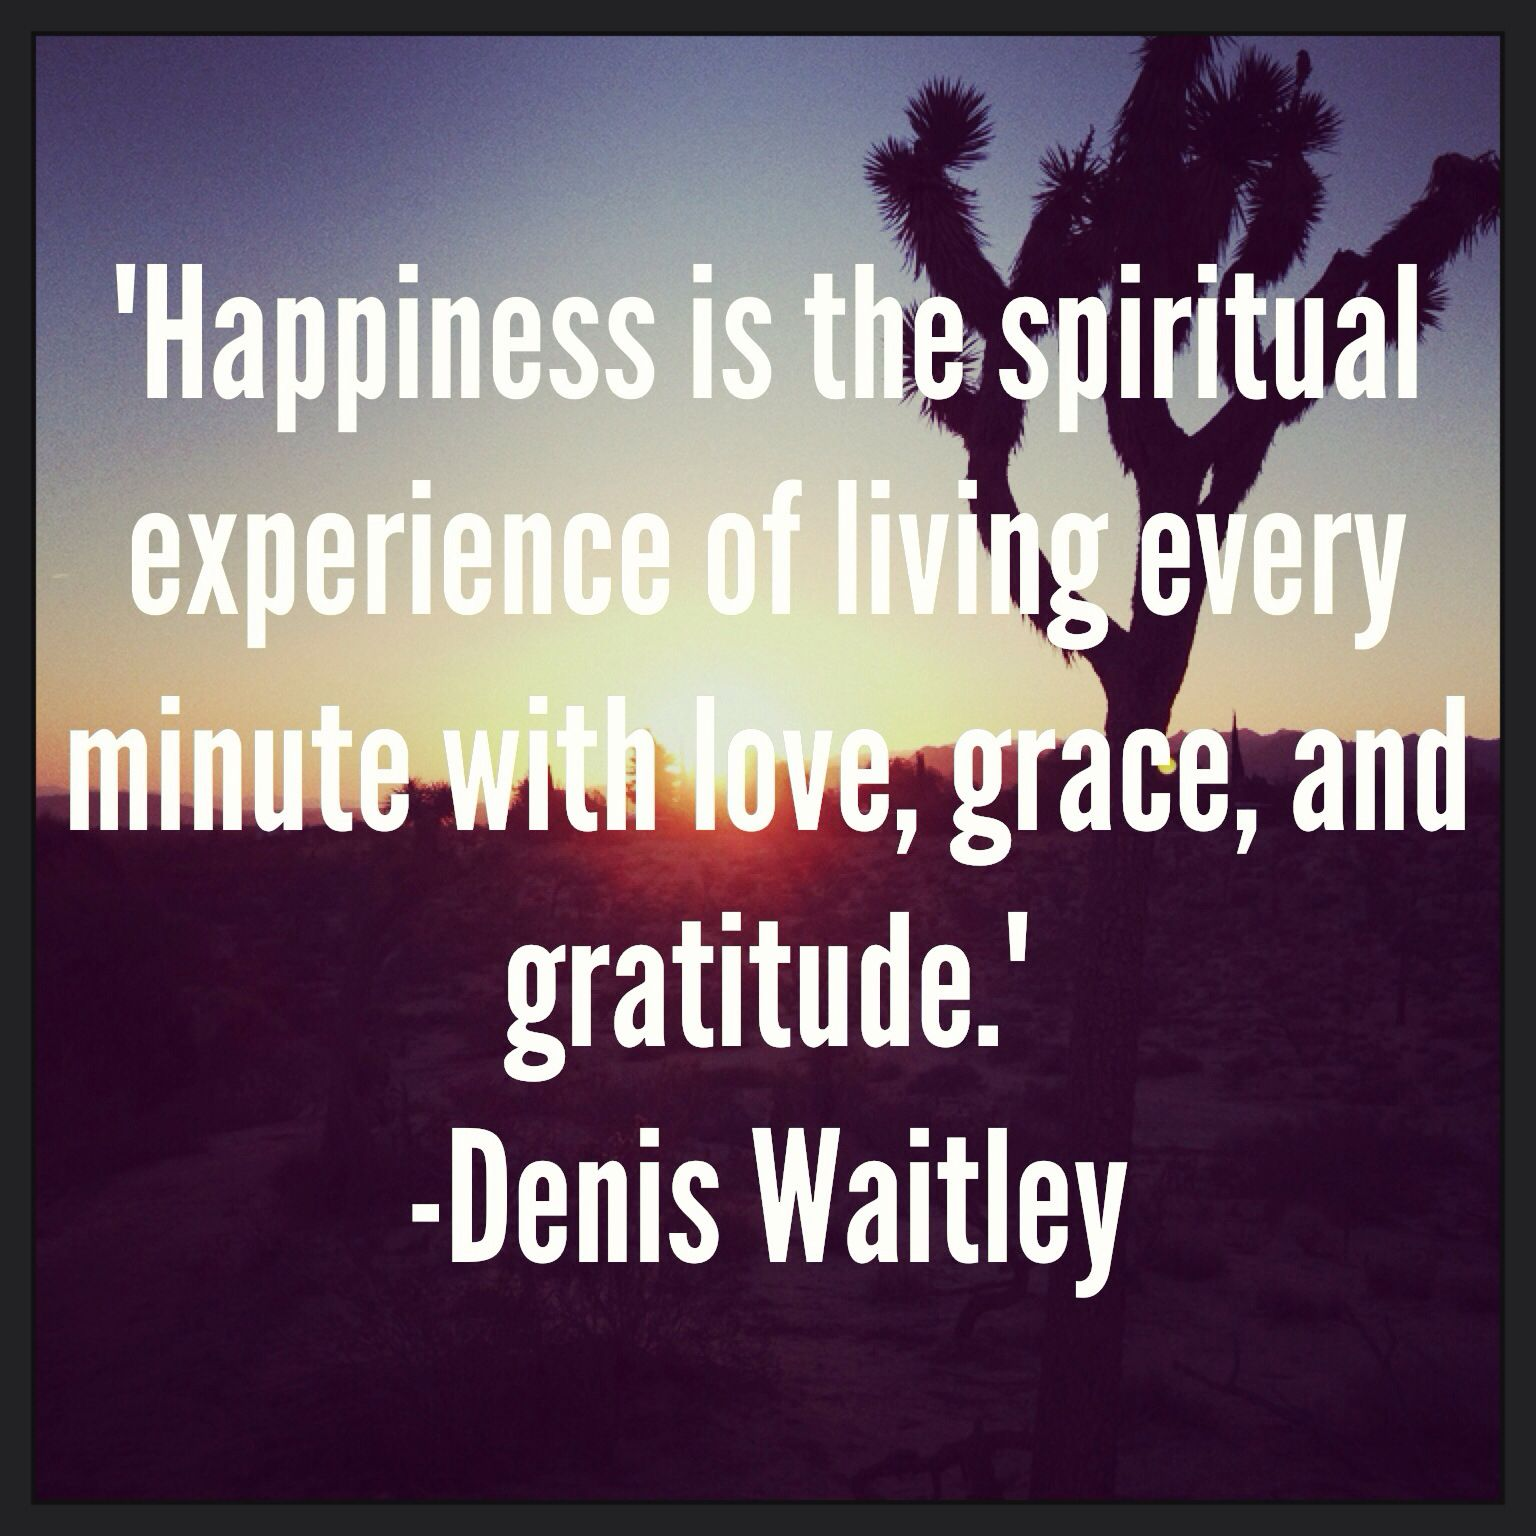 Spiritual Quotes About Love Happiness Spiritual Spirituality Love Grace Gratitude Wisdom